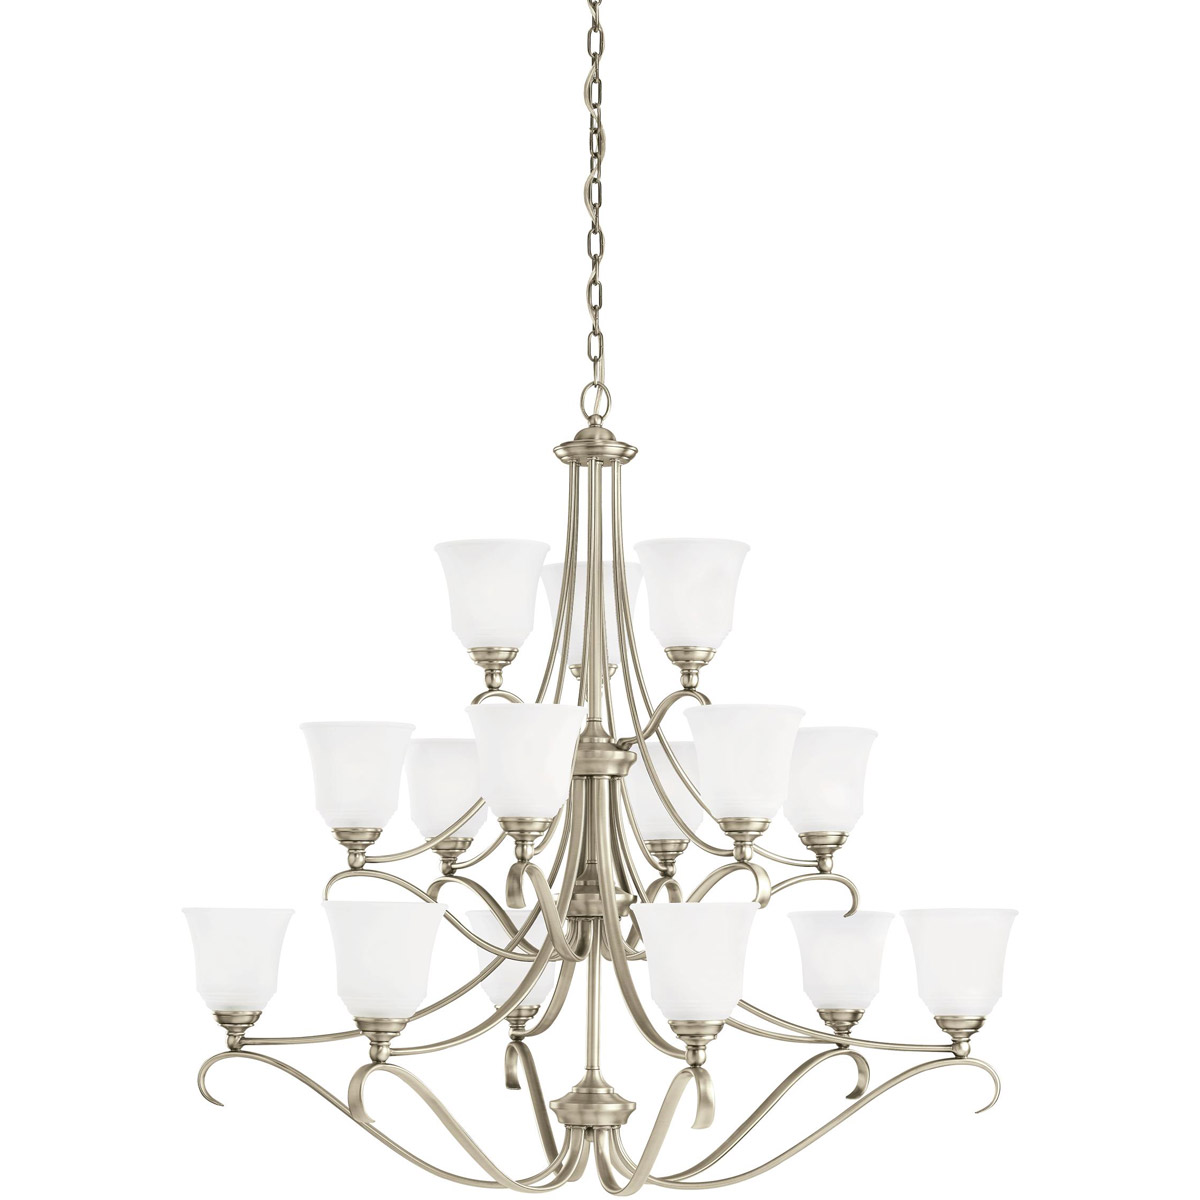 Sea Gull Lighting Parkview 15 Light Chandelier in Antique Brushed Nickel 31382-965 photo